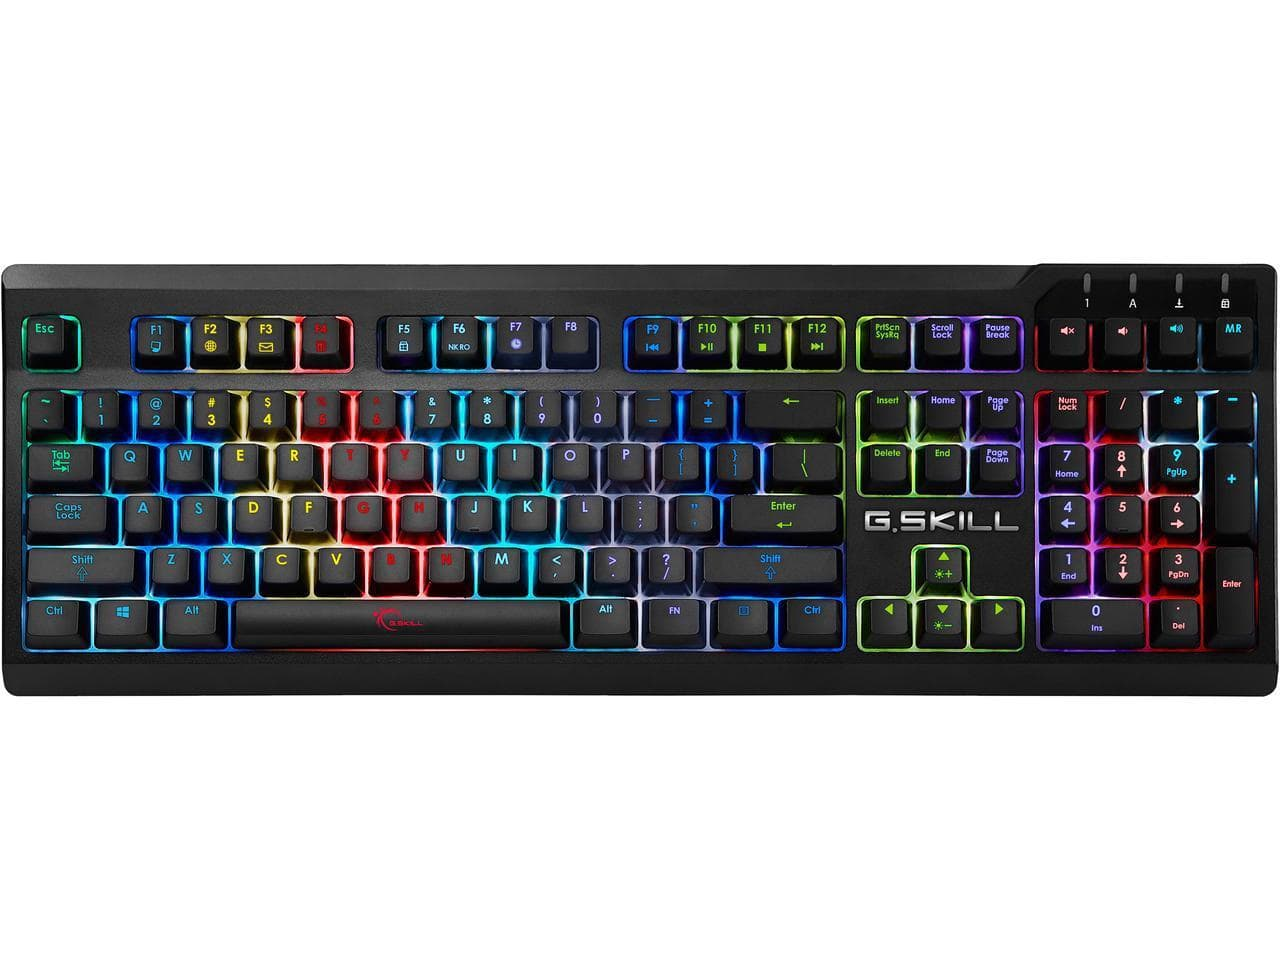 G.SKILL RIPJAWS KM570 RGB Mechanical Gaming Keyboard with Cherry MX RGB Speed Silver Switches for $62.99 + Free Shipping @ Newegg